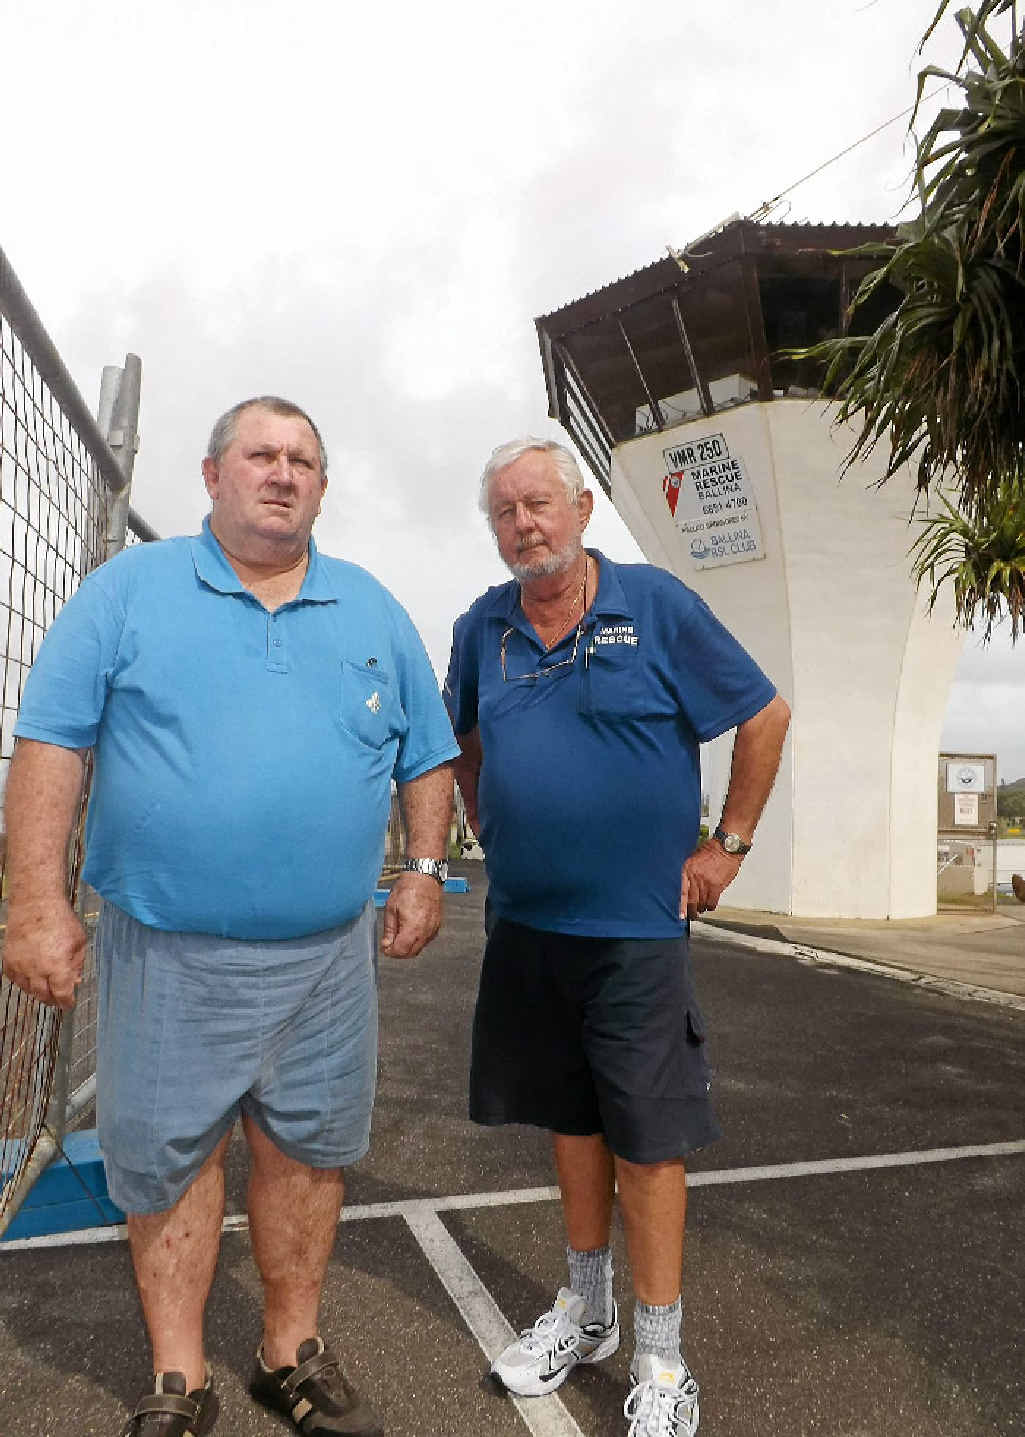 STORM FRIGHT: Marine Rescue Ballina volunteer John Donoghue and commander Norm Lannoy at the organisation's tower at North Wall.